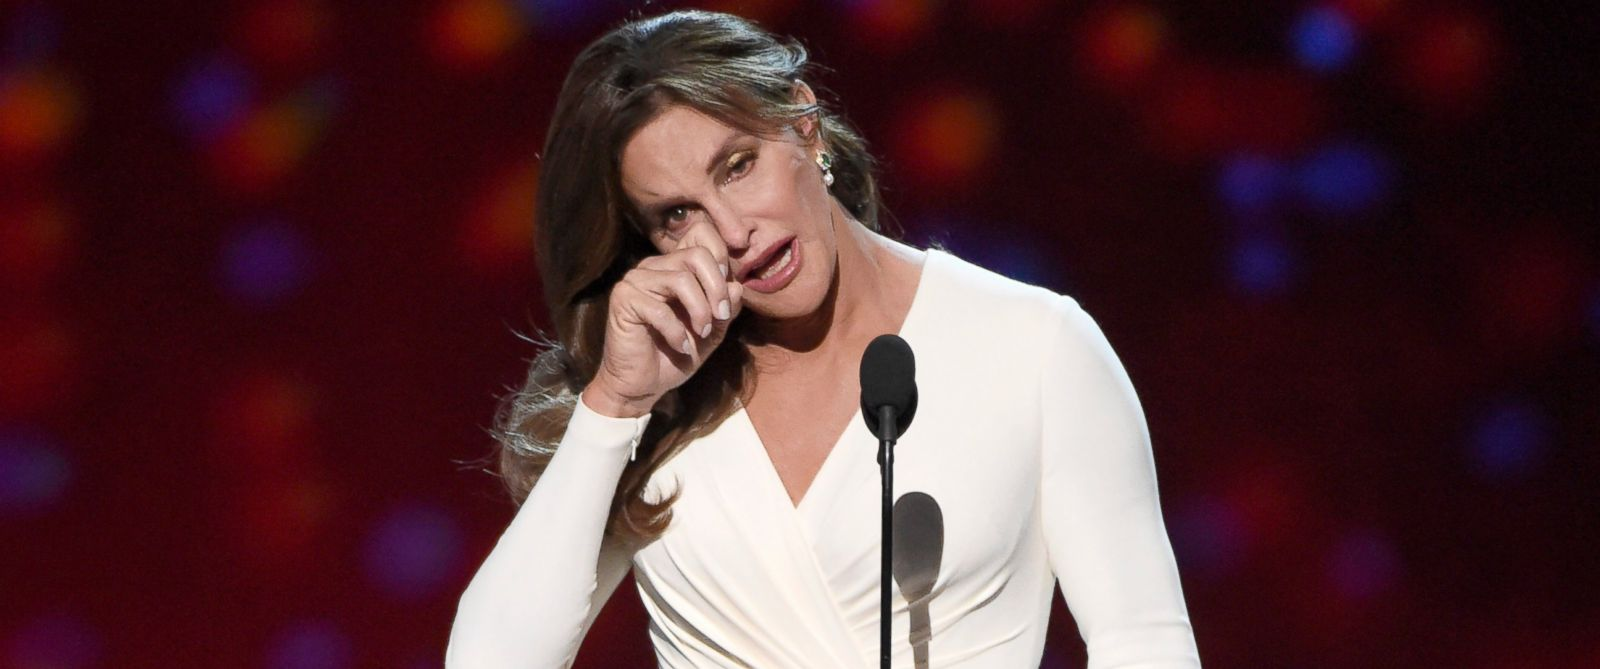 PHOTO: Caitlyn Jenner accepts the Arthur Ashe award for courage at the ESPY Awards at the Microsoft Theater, July 15, 2015, in Los Angeles.